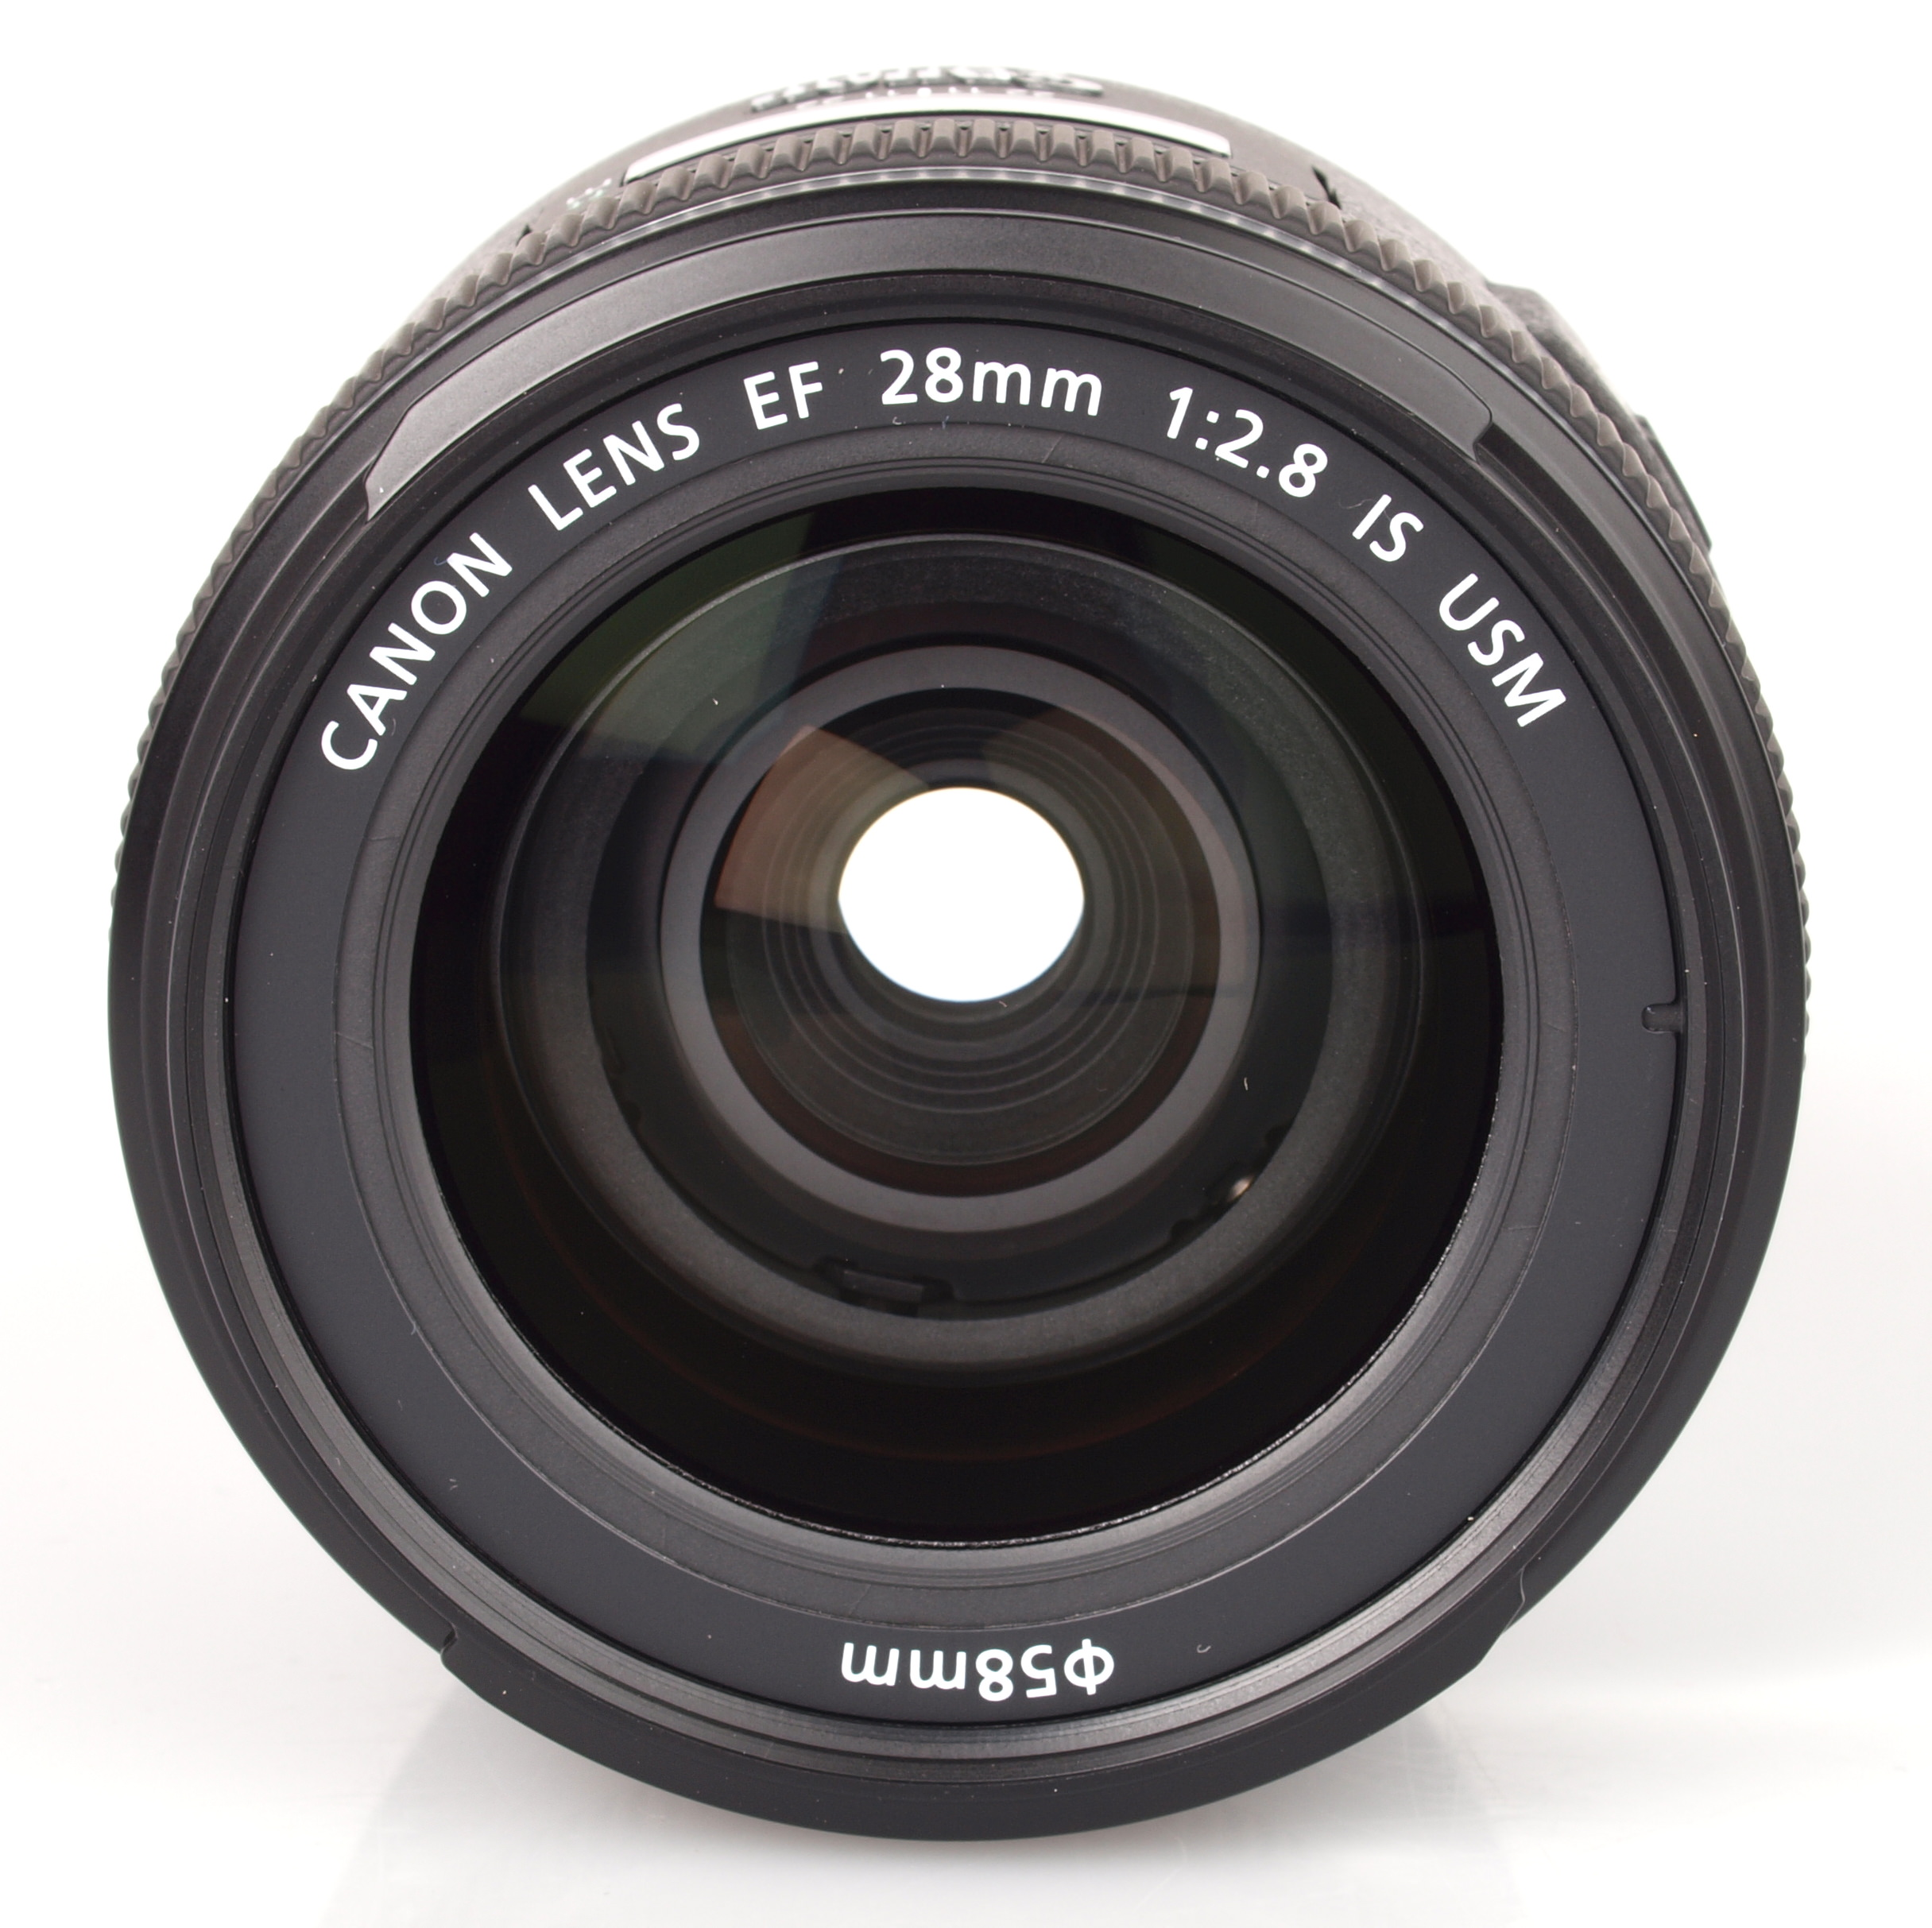 Canon EF 28mm f/2.8 IS...